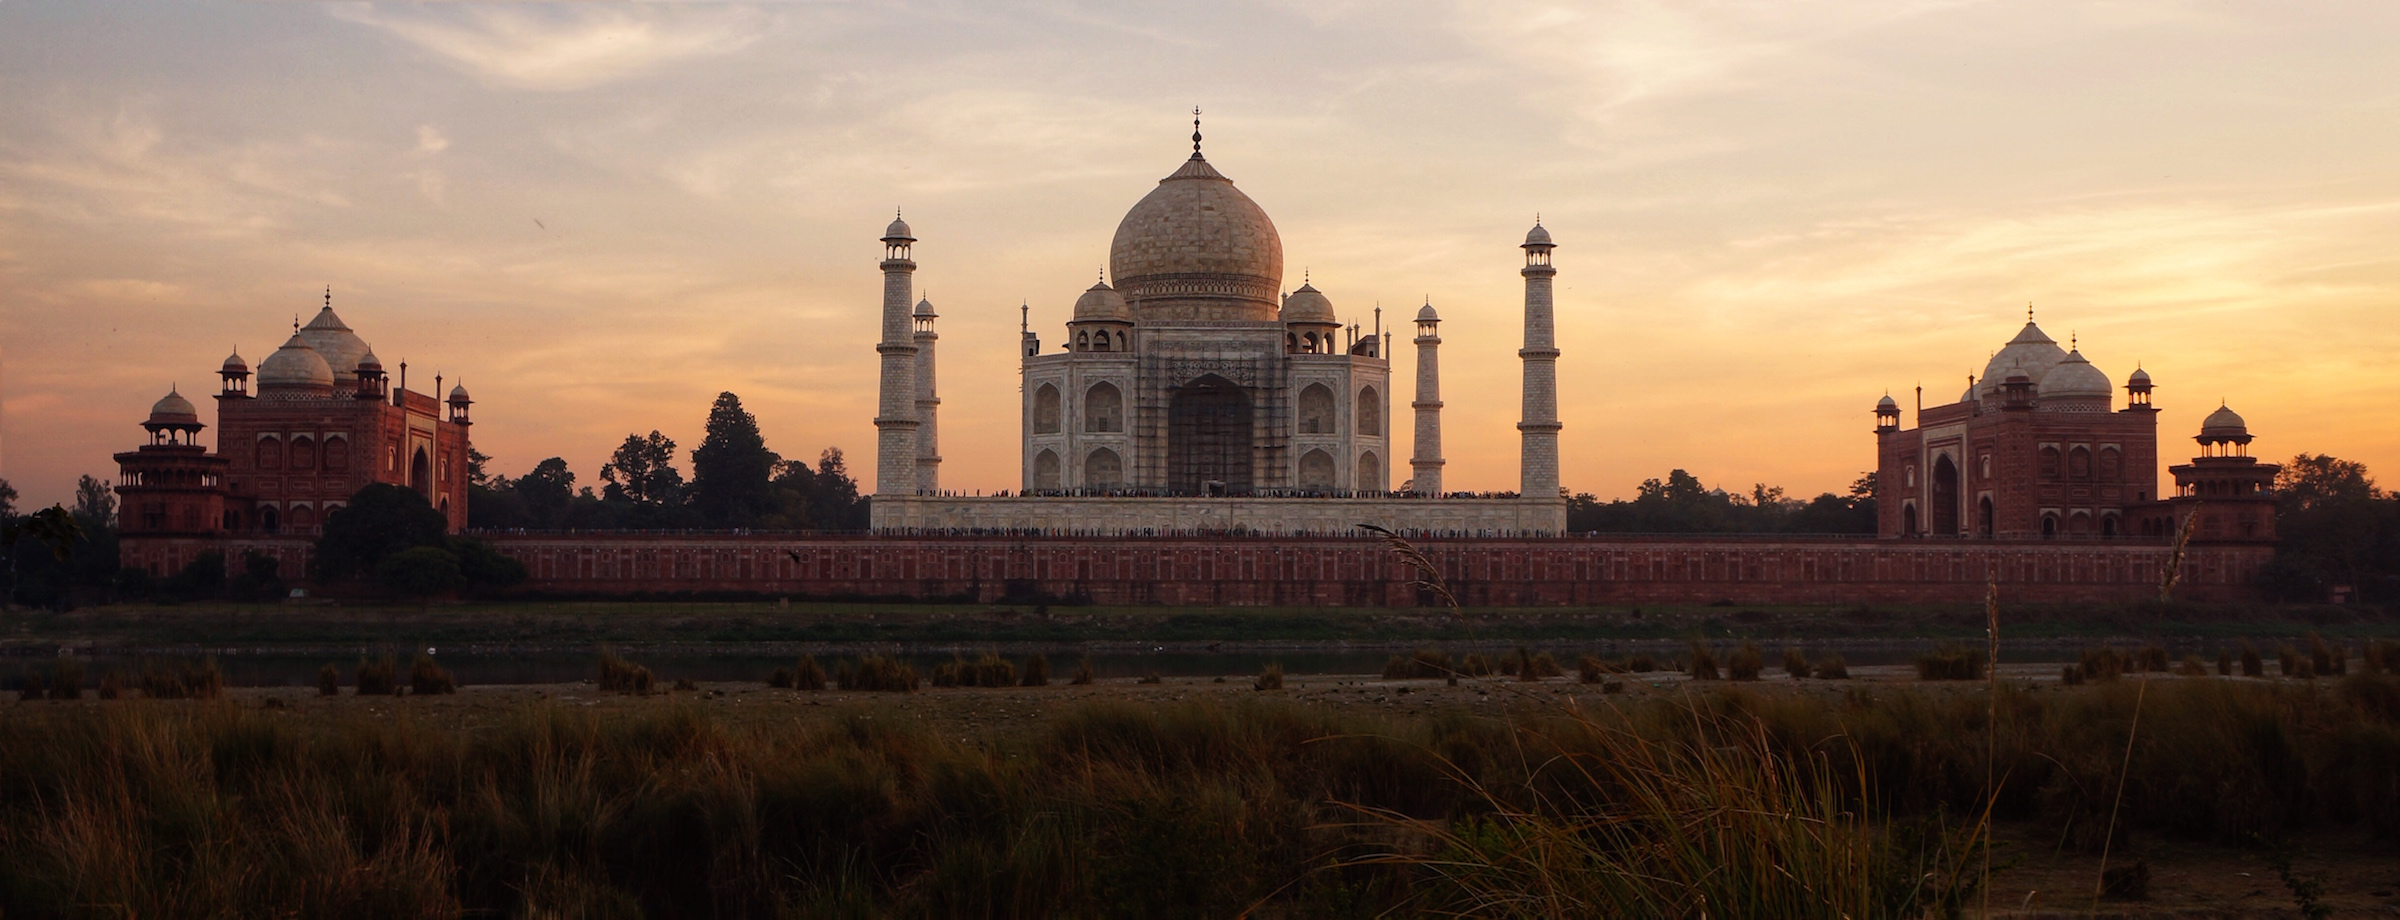 The iconic Taj Mahal, built in the 17th century and inscribed on the World Heritage List in 1983.